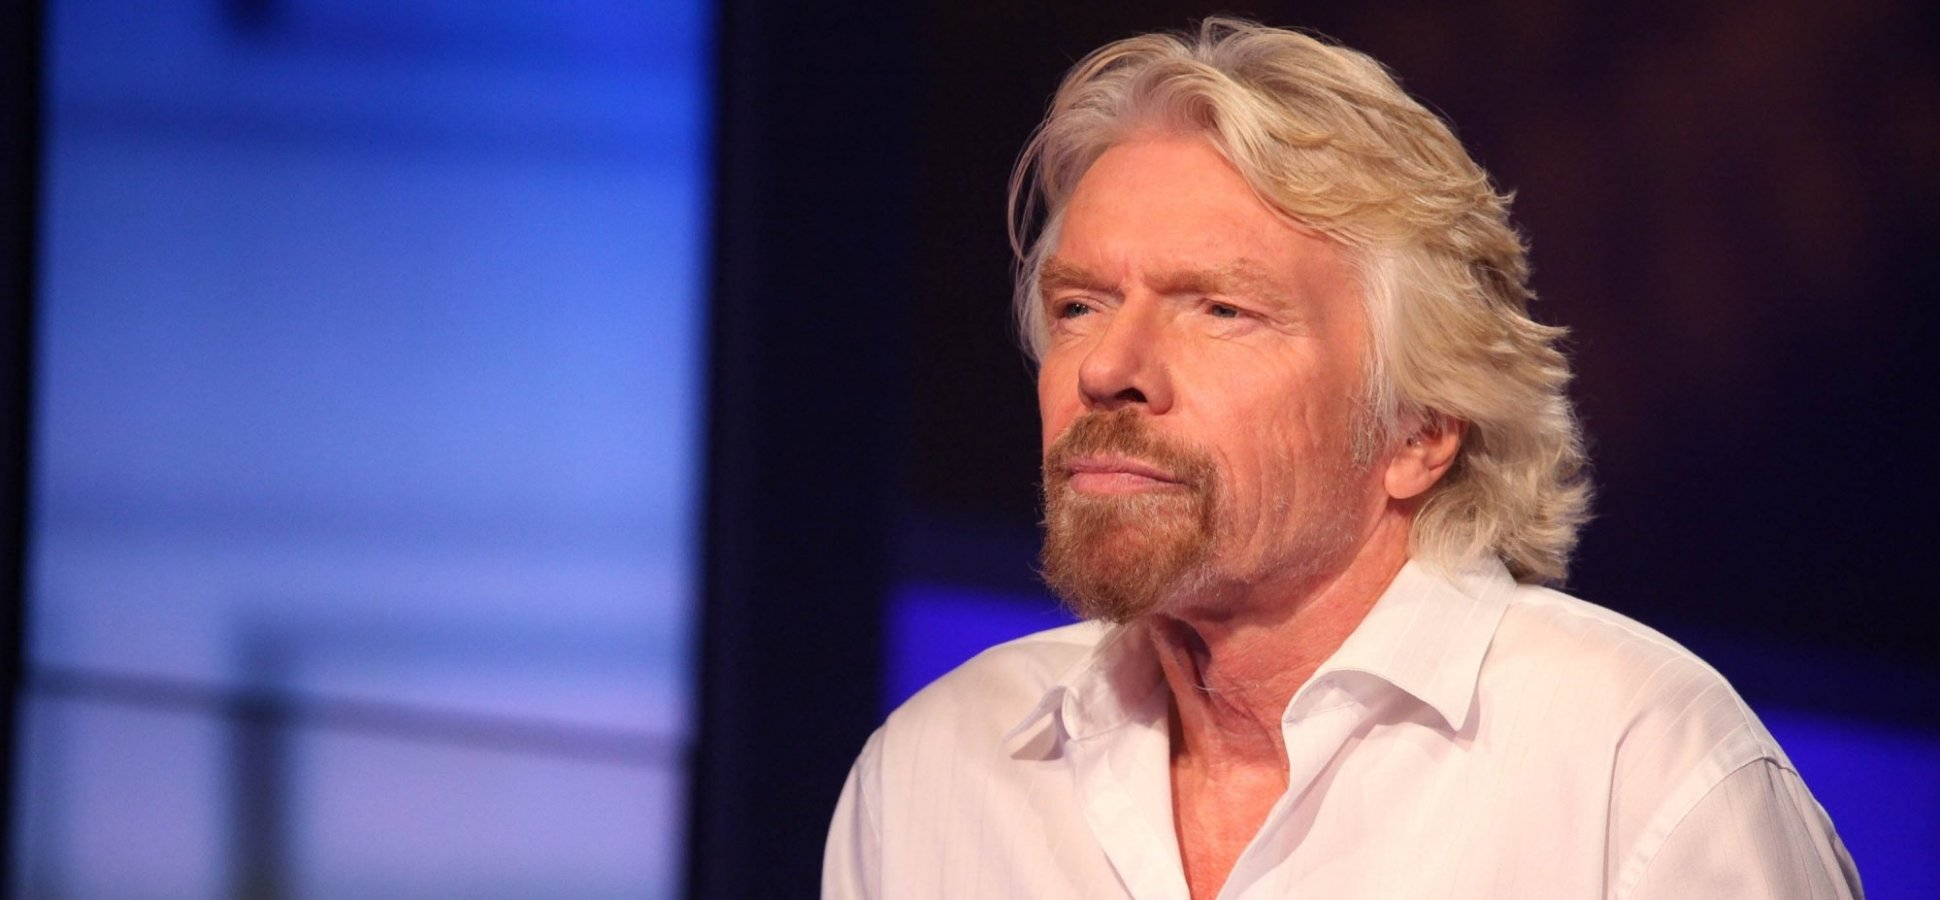 Not Sure What to Do With Your Life? Richard Branson Says Start by Asking These 2 Simple Questions